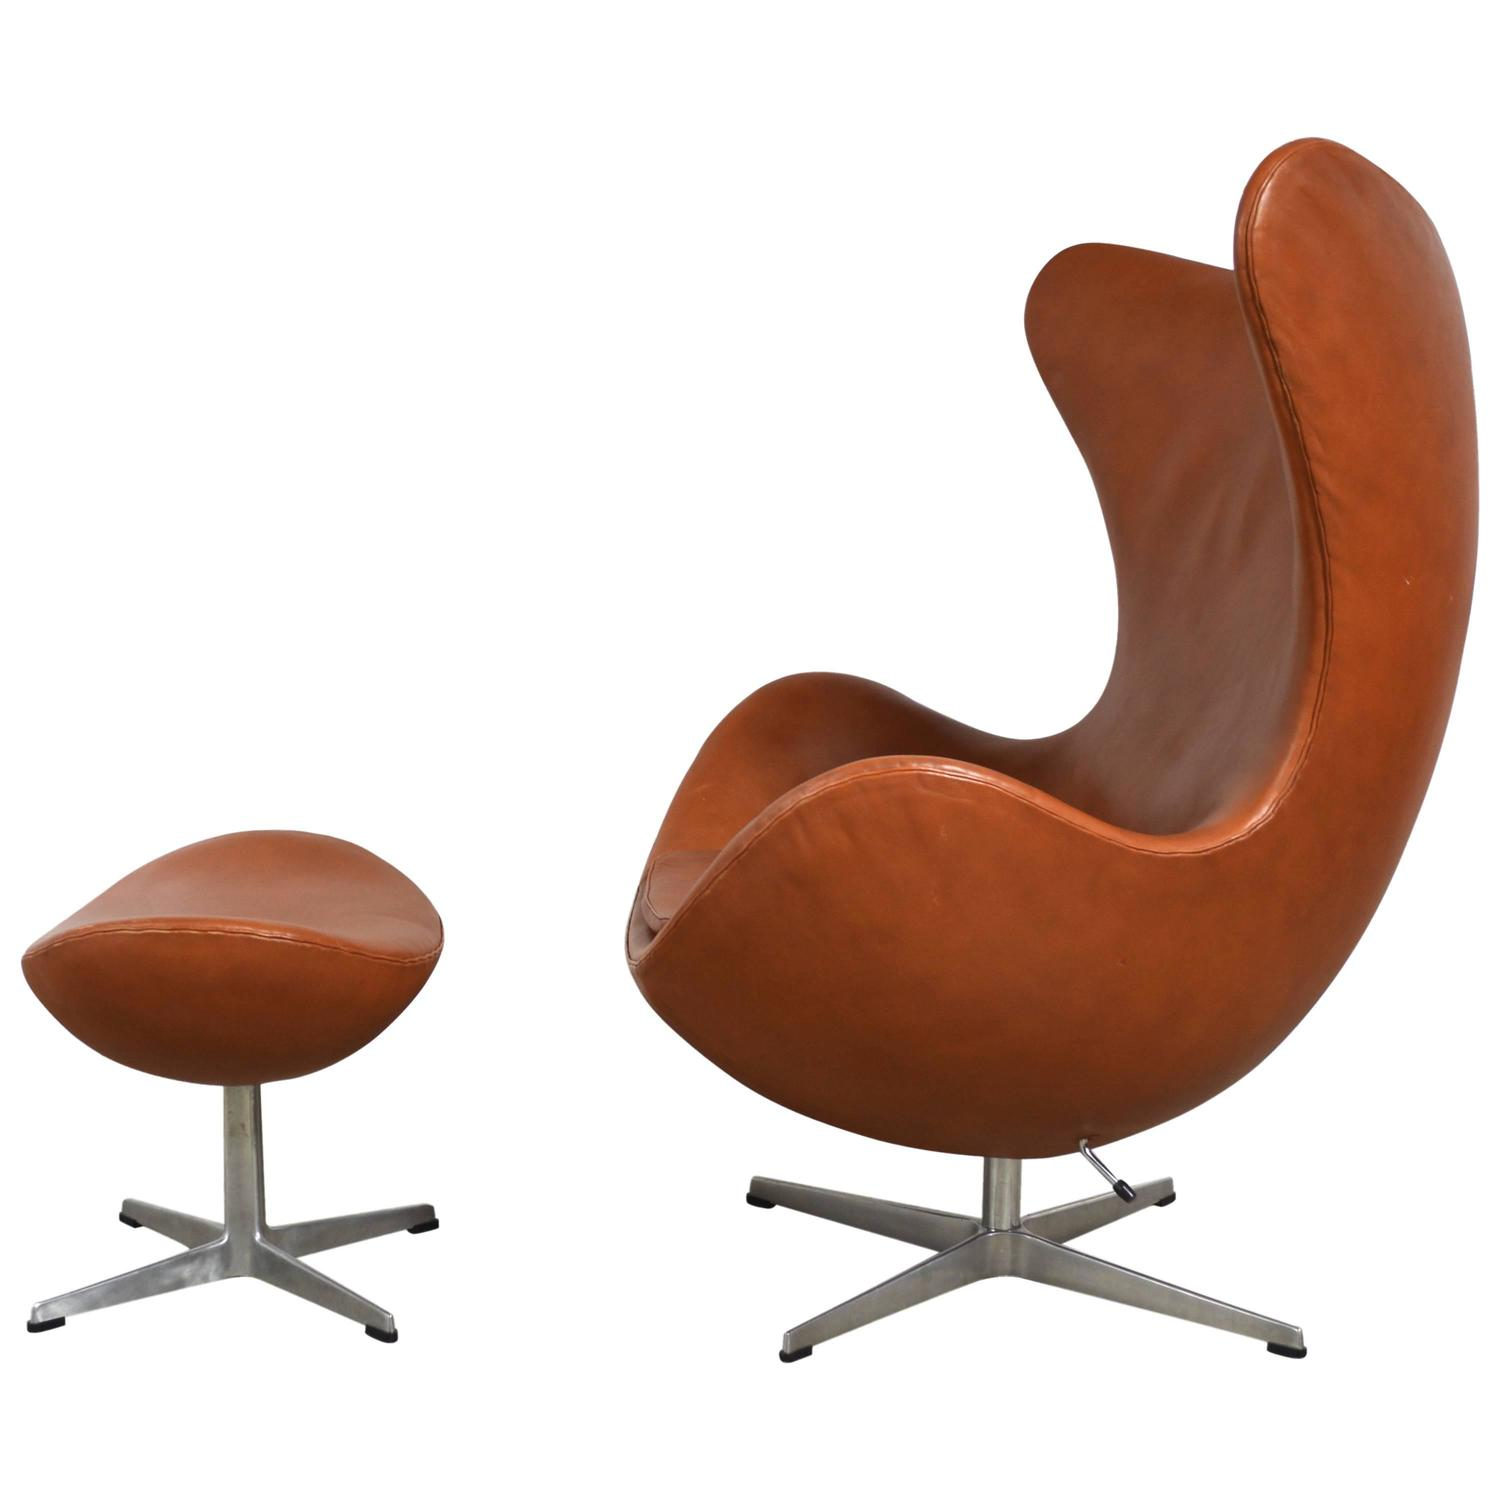 Arne jacobsen leather egg chair and ottoman at 1stdibs for Egg chair jacobsen